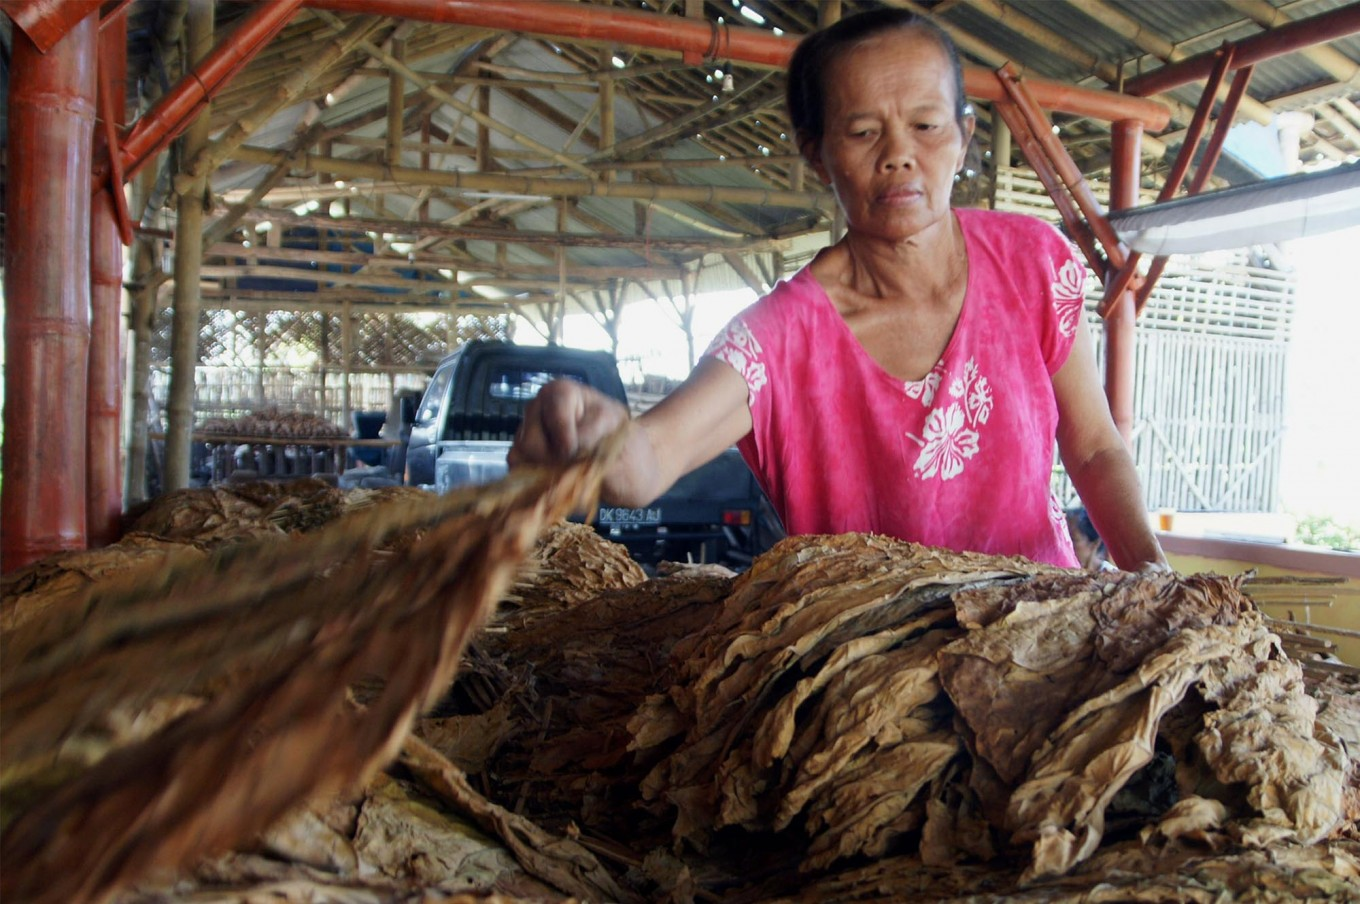 As the rest of the world quits, Indonesia wants lax rules for tobacco investment